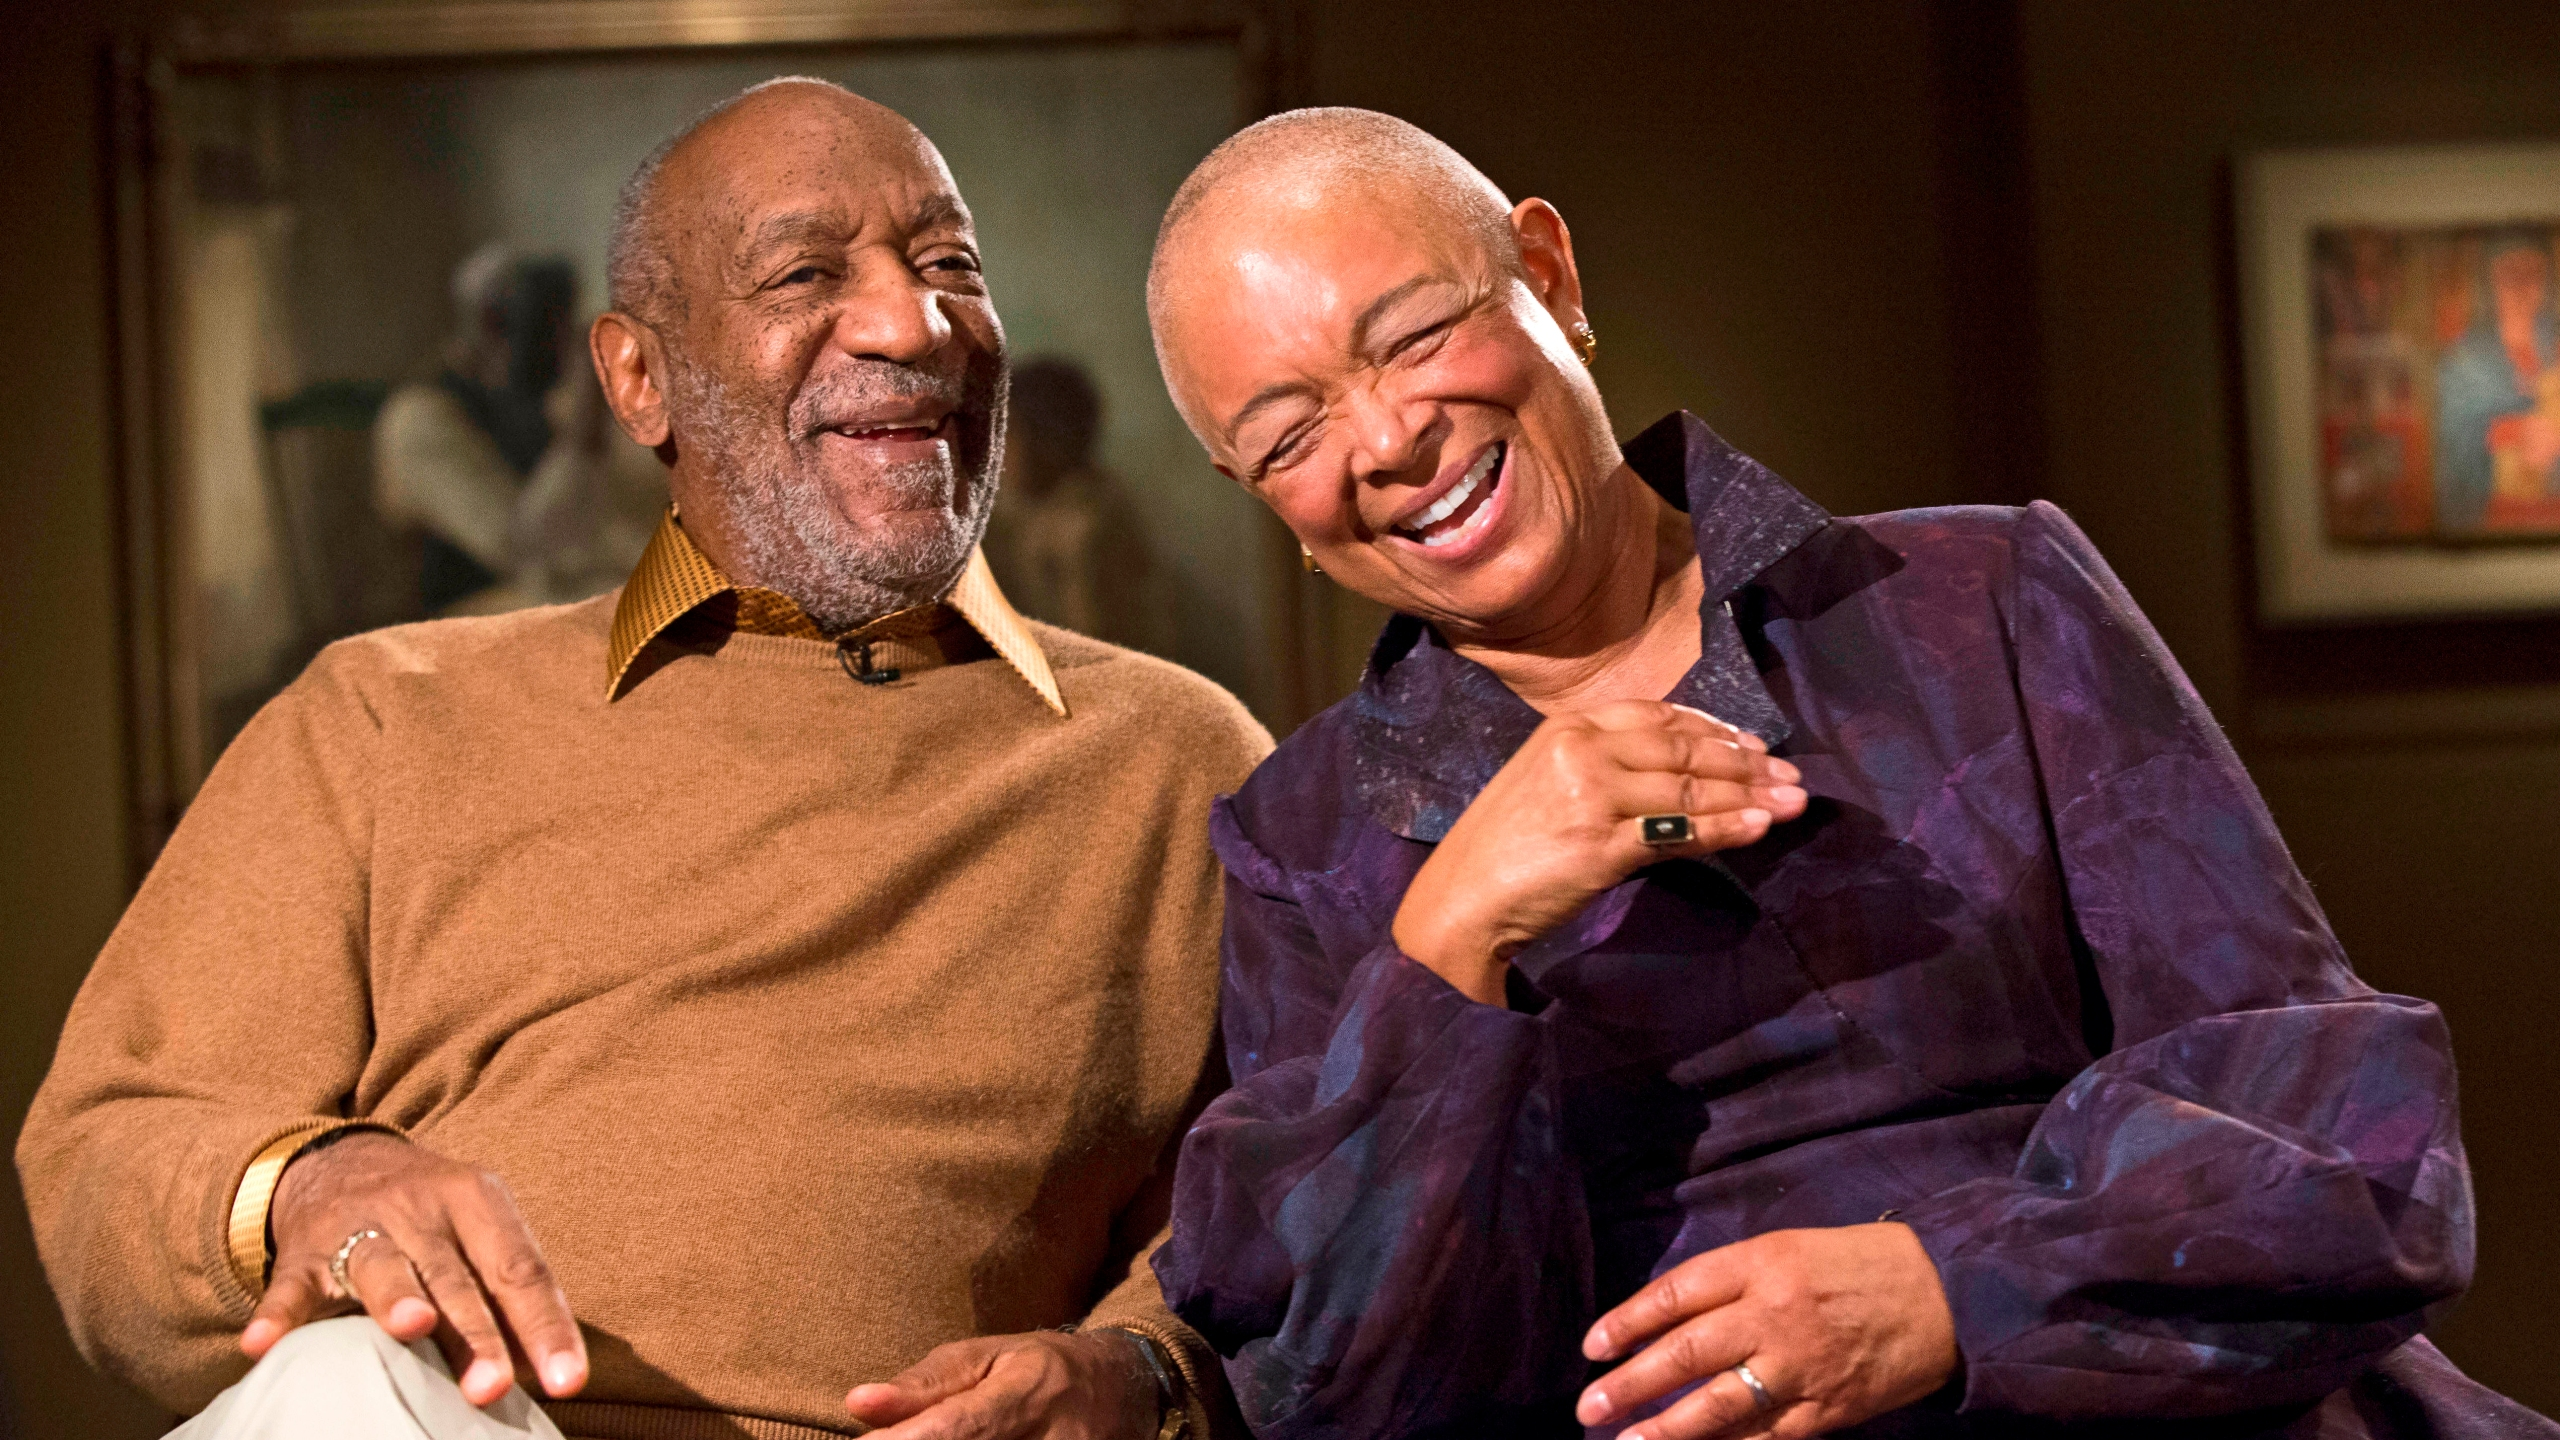 Photo_Gallery_Bill_Cosby_45888-159532.jpg68680272